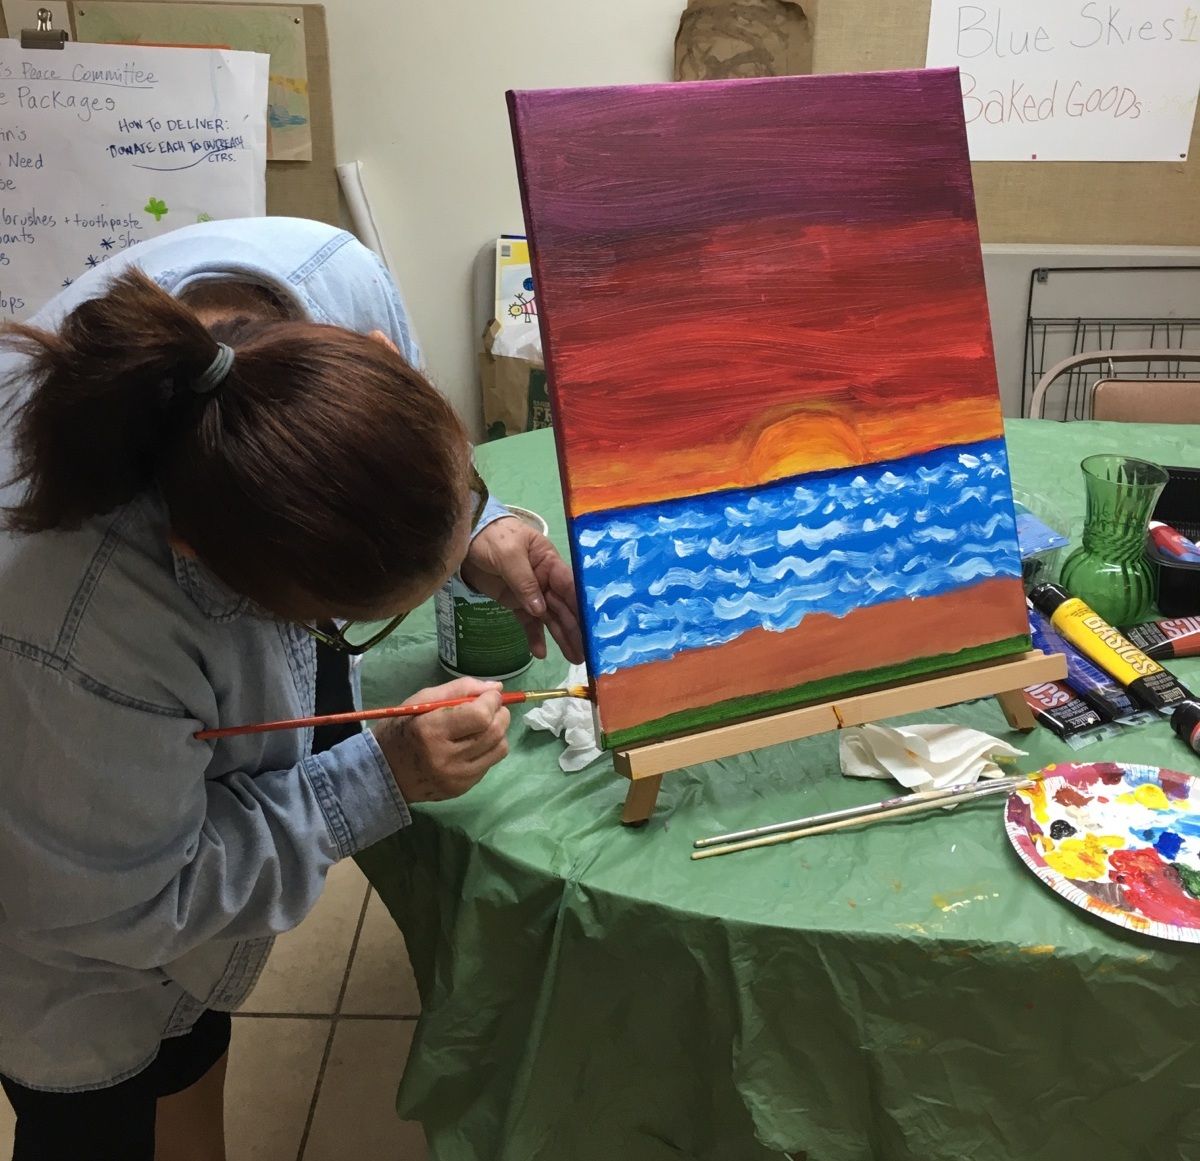 Emma at work on a painting.